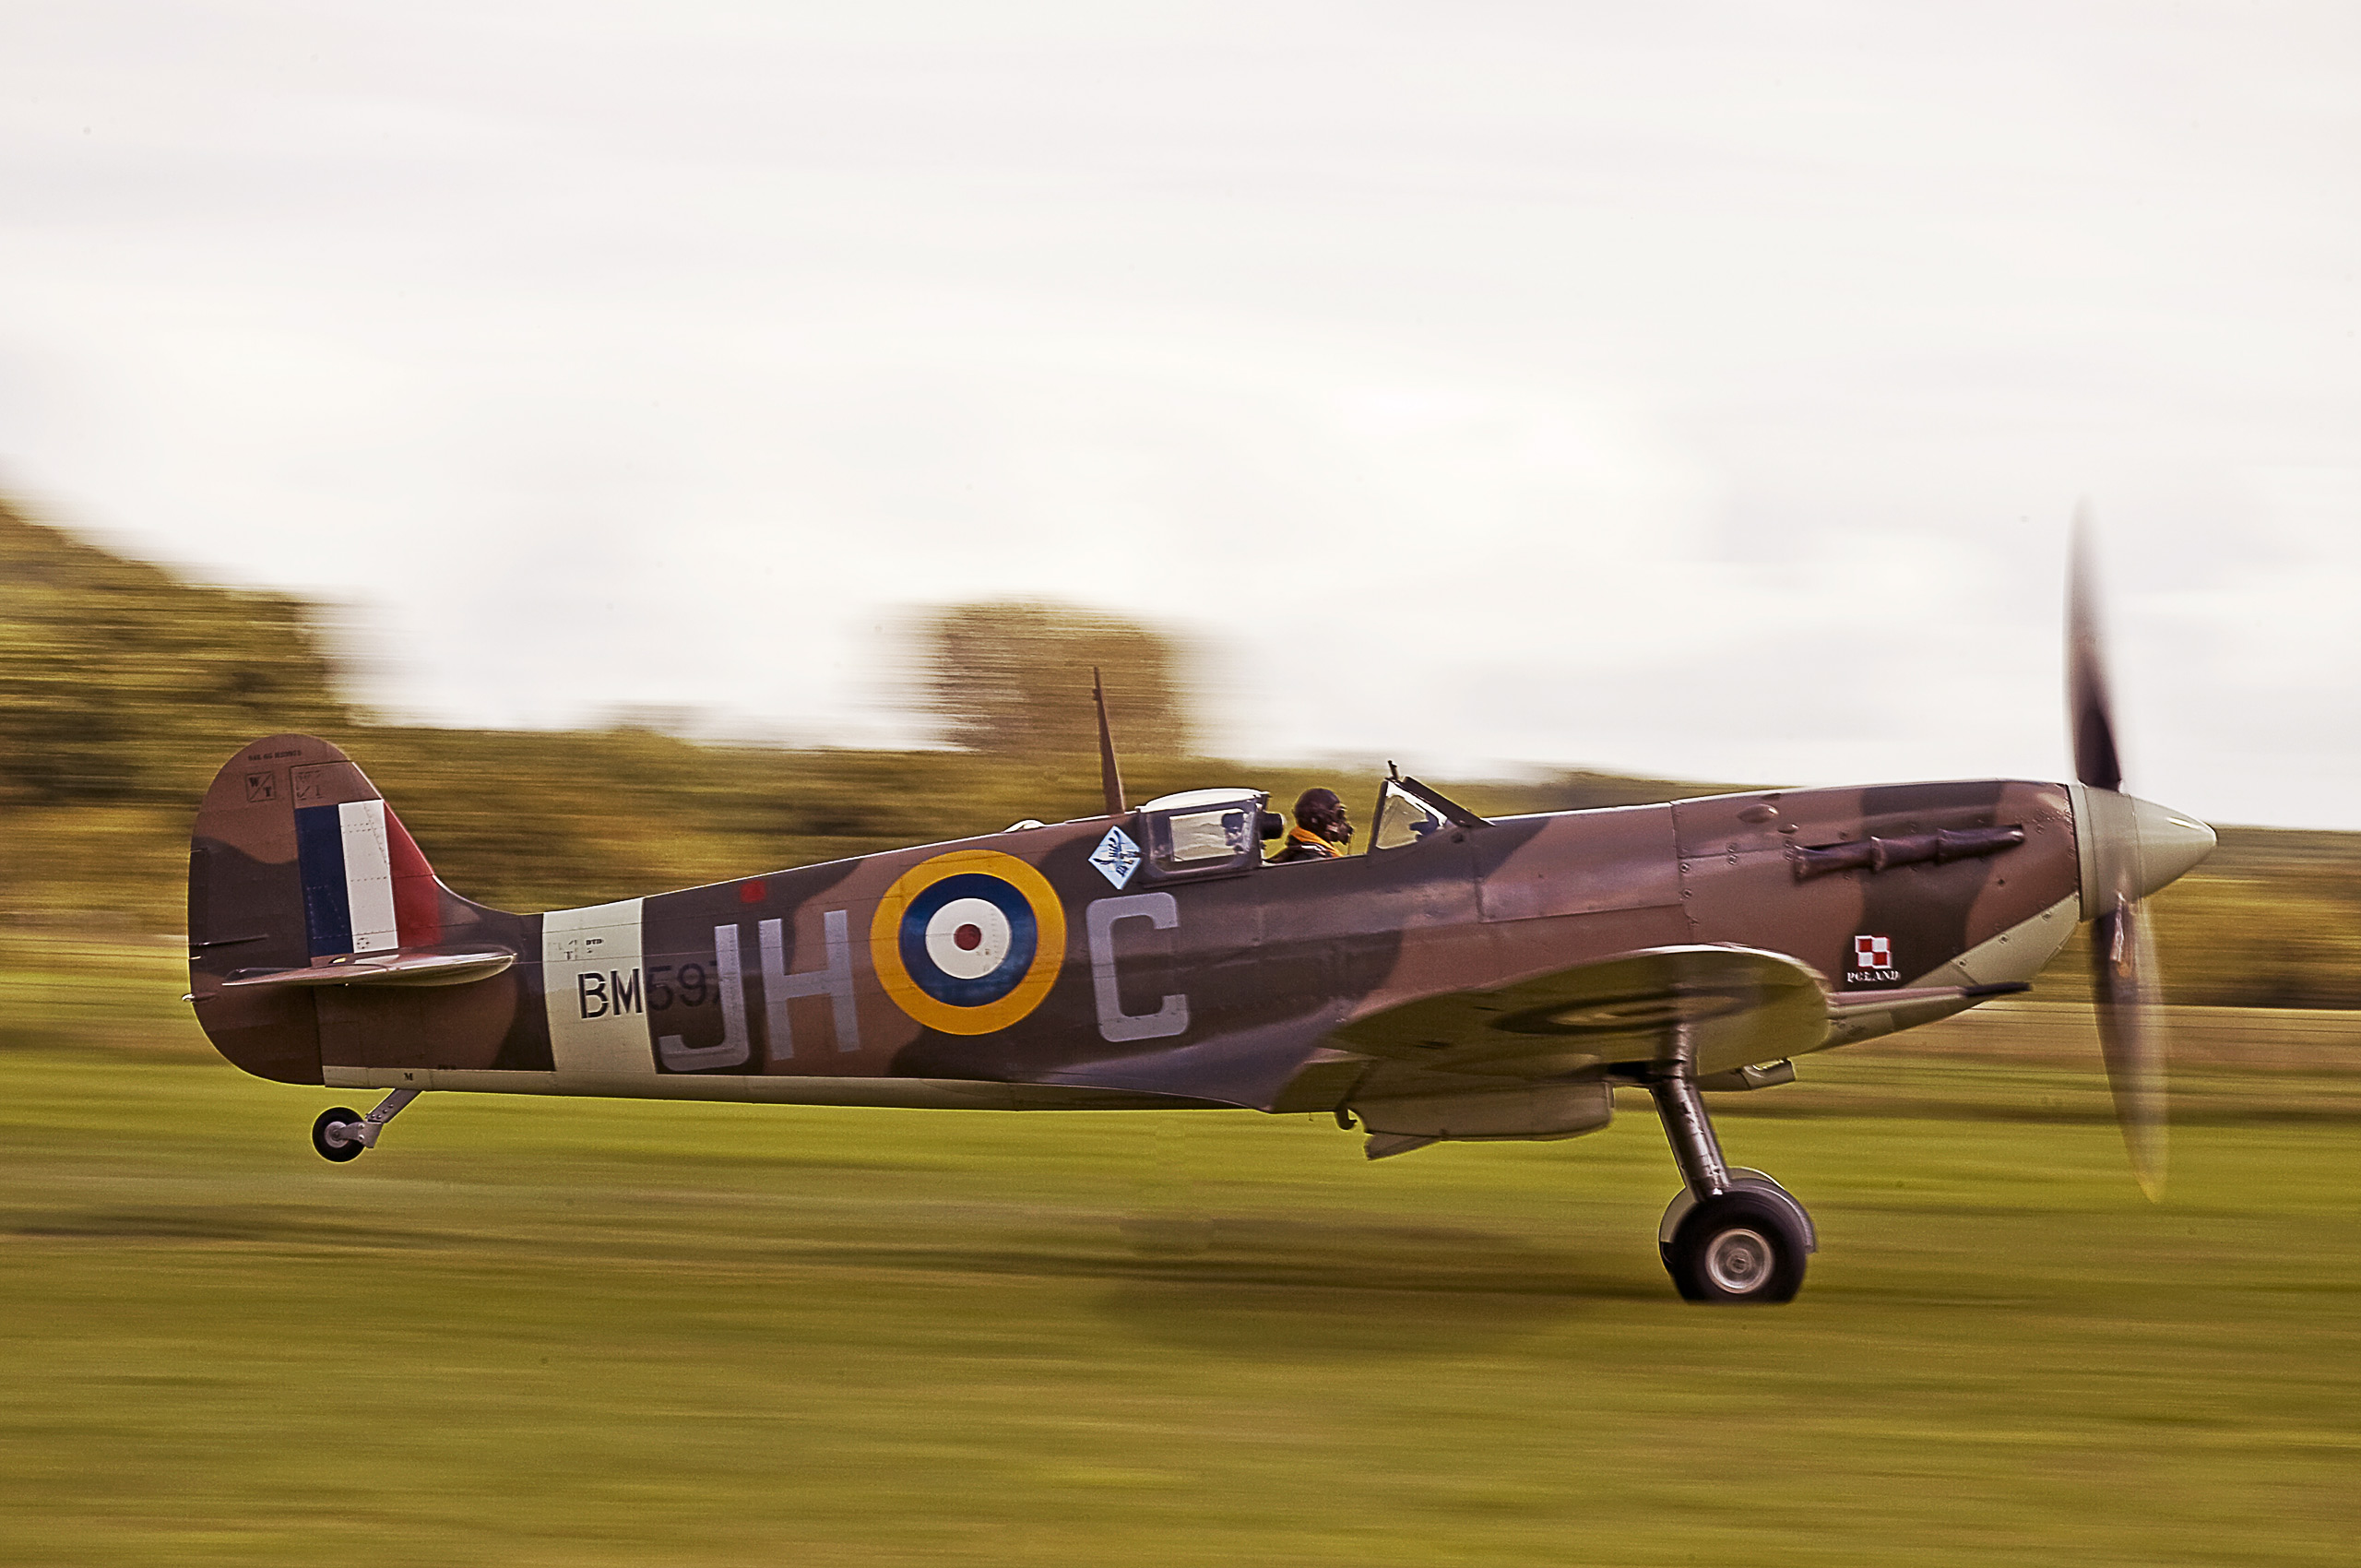 Spitfire_Paul-Hames-Photography.jpg